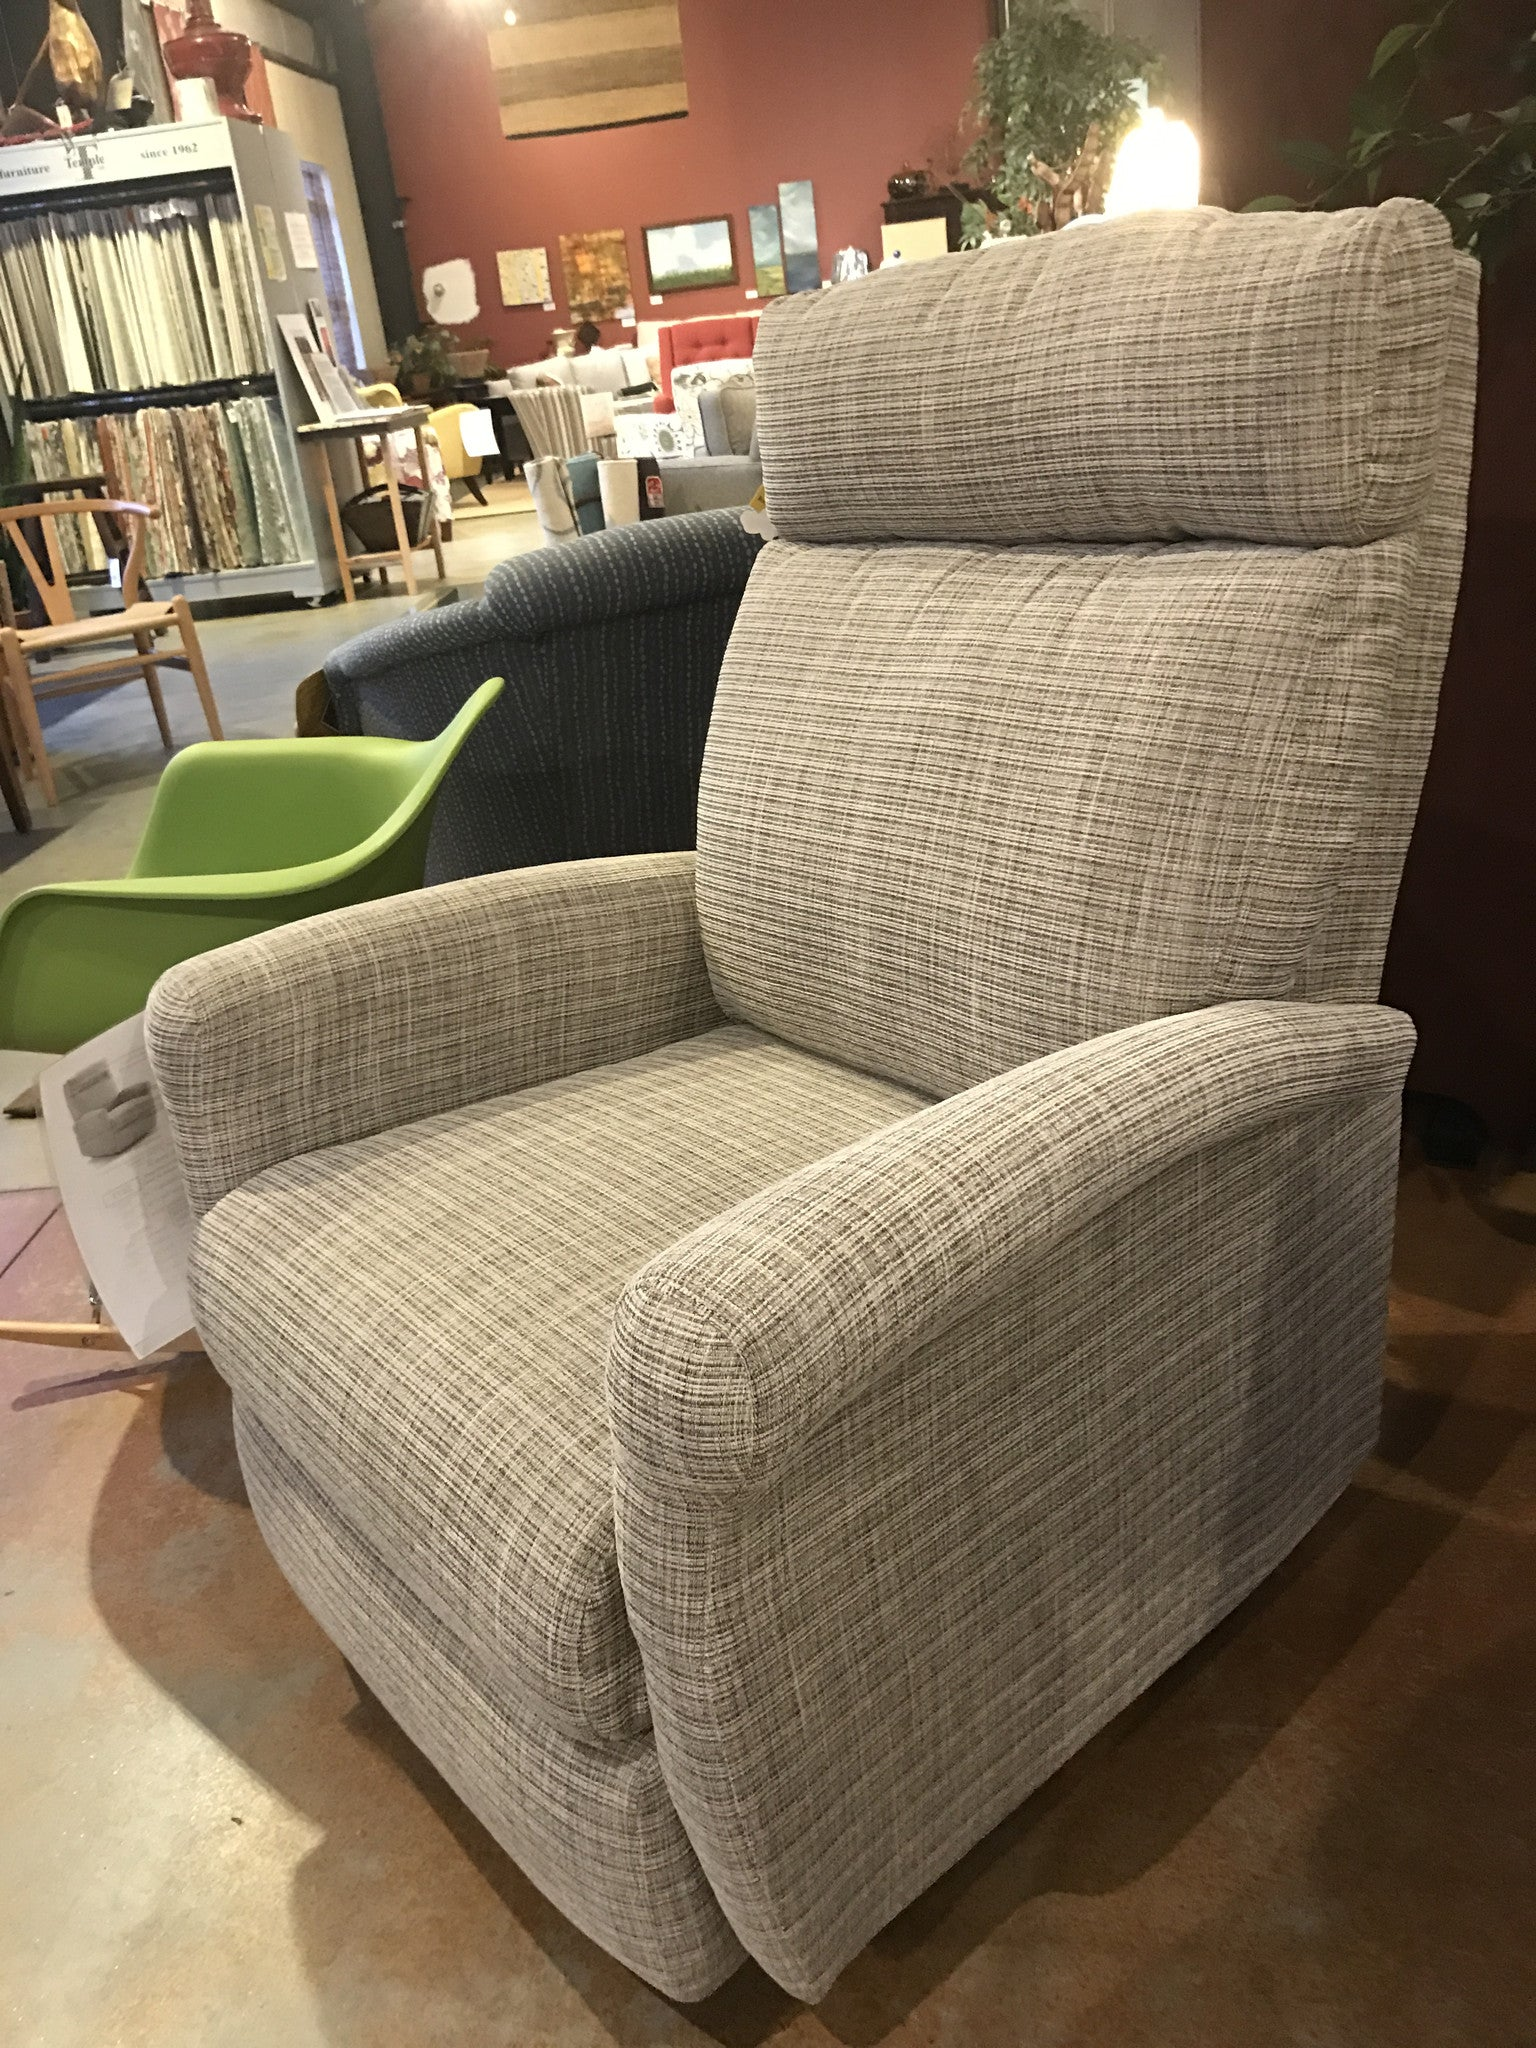 Lovely Compact Rocker Non Toxic Recliner In Tweed Fabric From Condofurniture.com  And Endicott Home ...